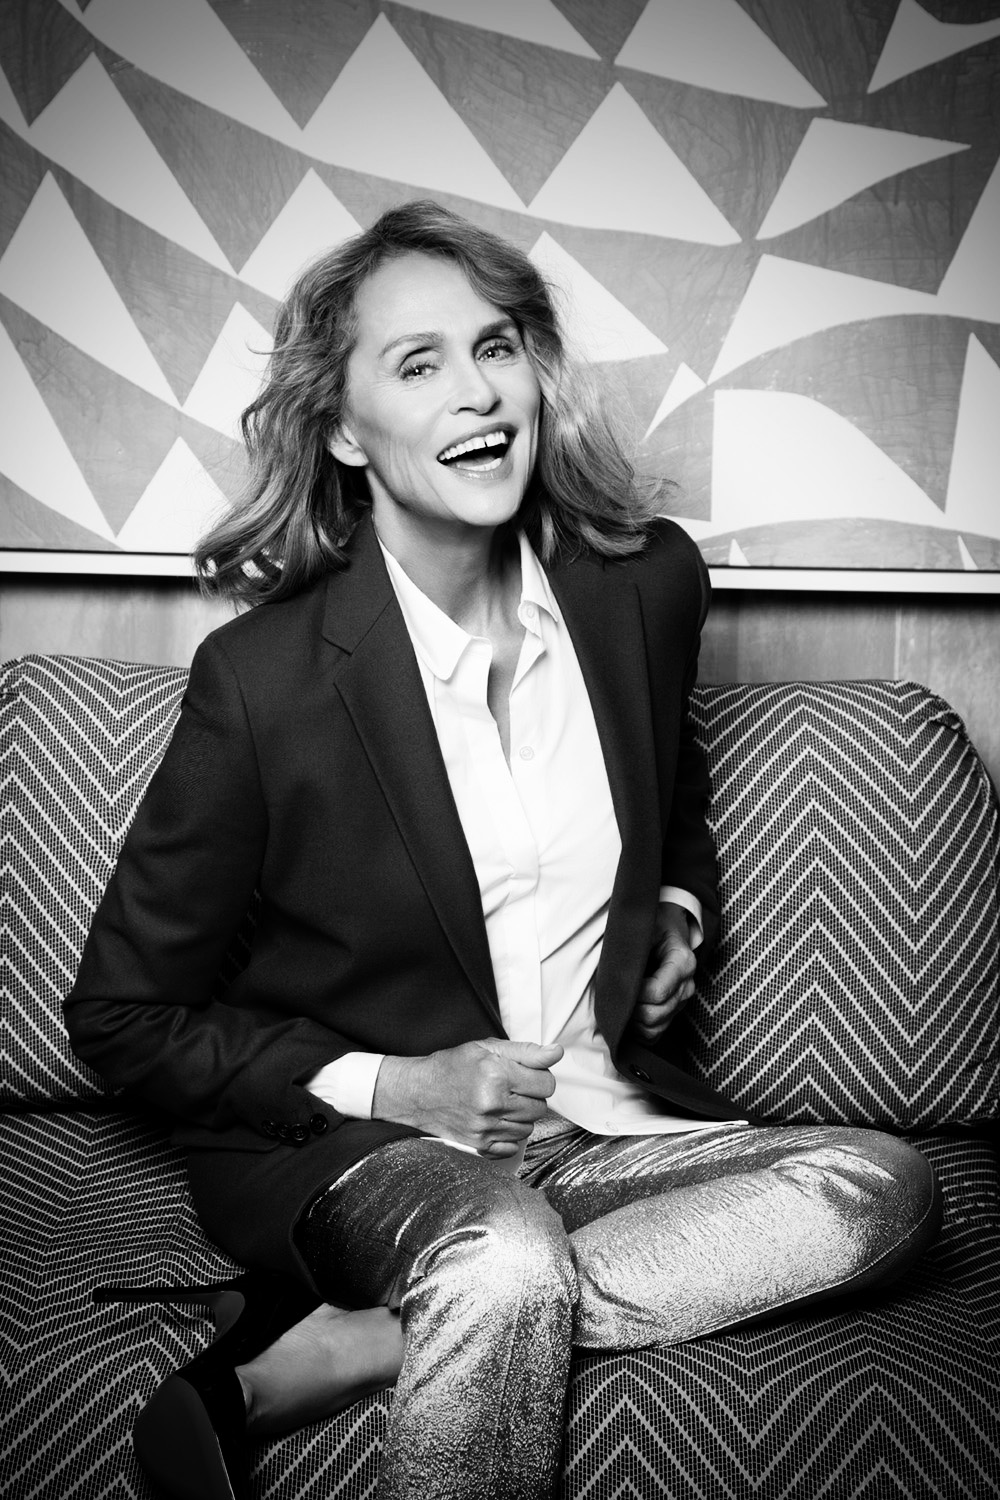 Lauren-Hutton-Photography-by-Indira-Cesarine-006-bw.jpg